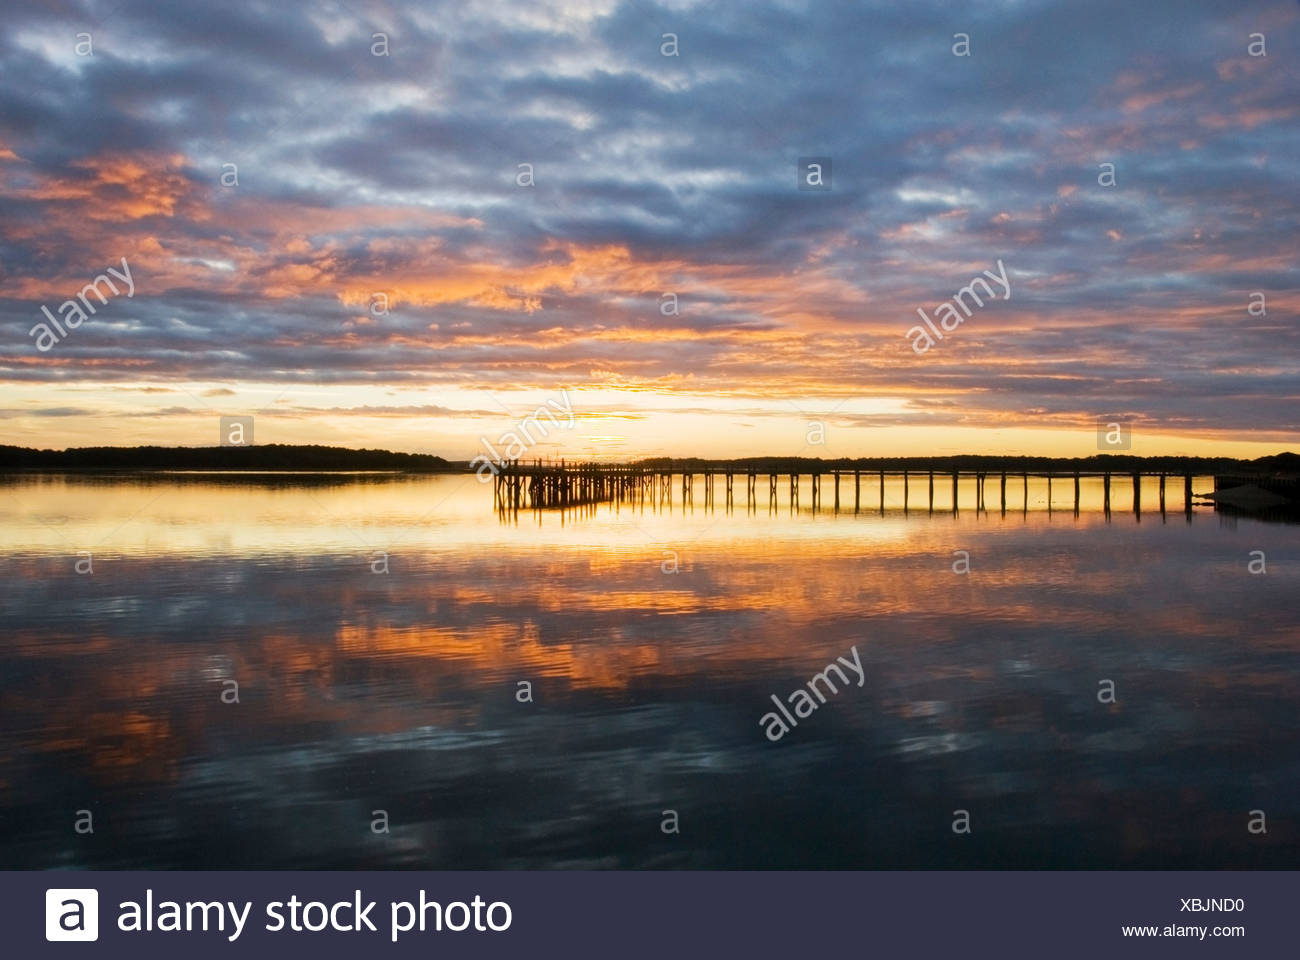 A silhouette of a pier at sunset on the Intracoastal Waterway on Hilton Head Island, SC. - Stock Image